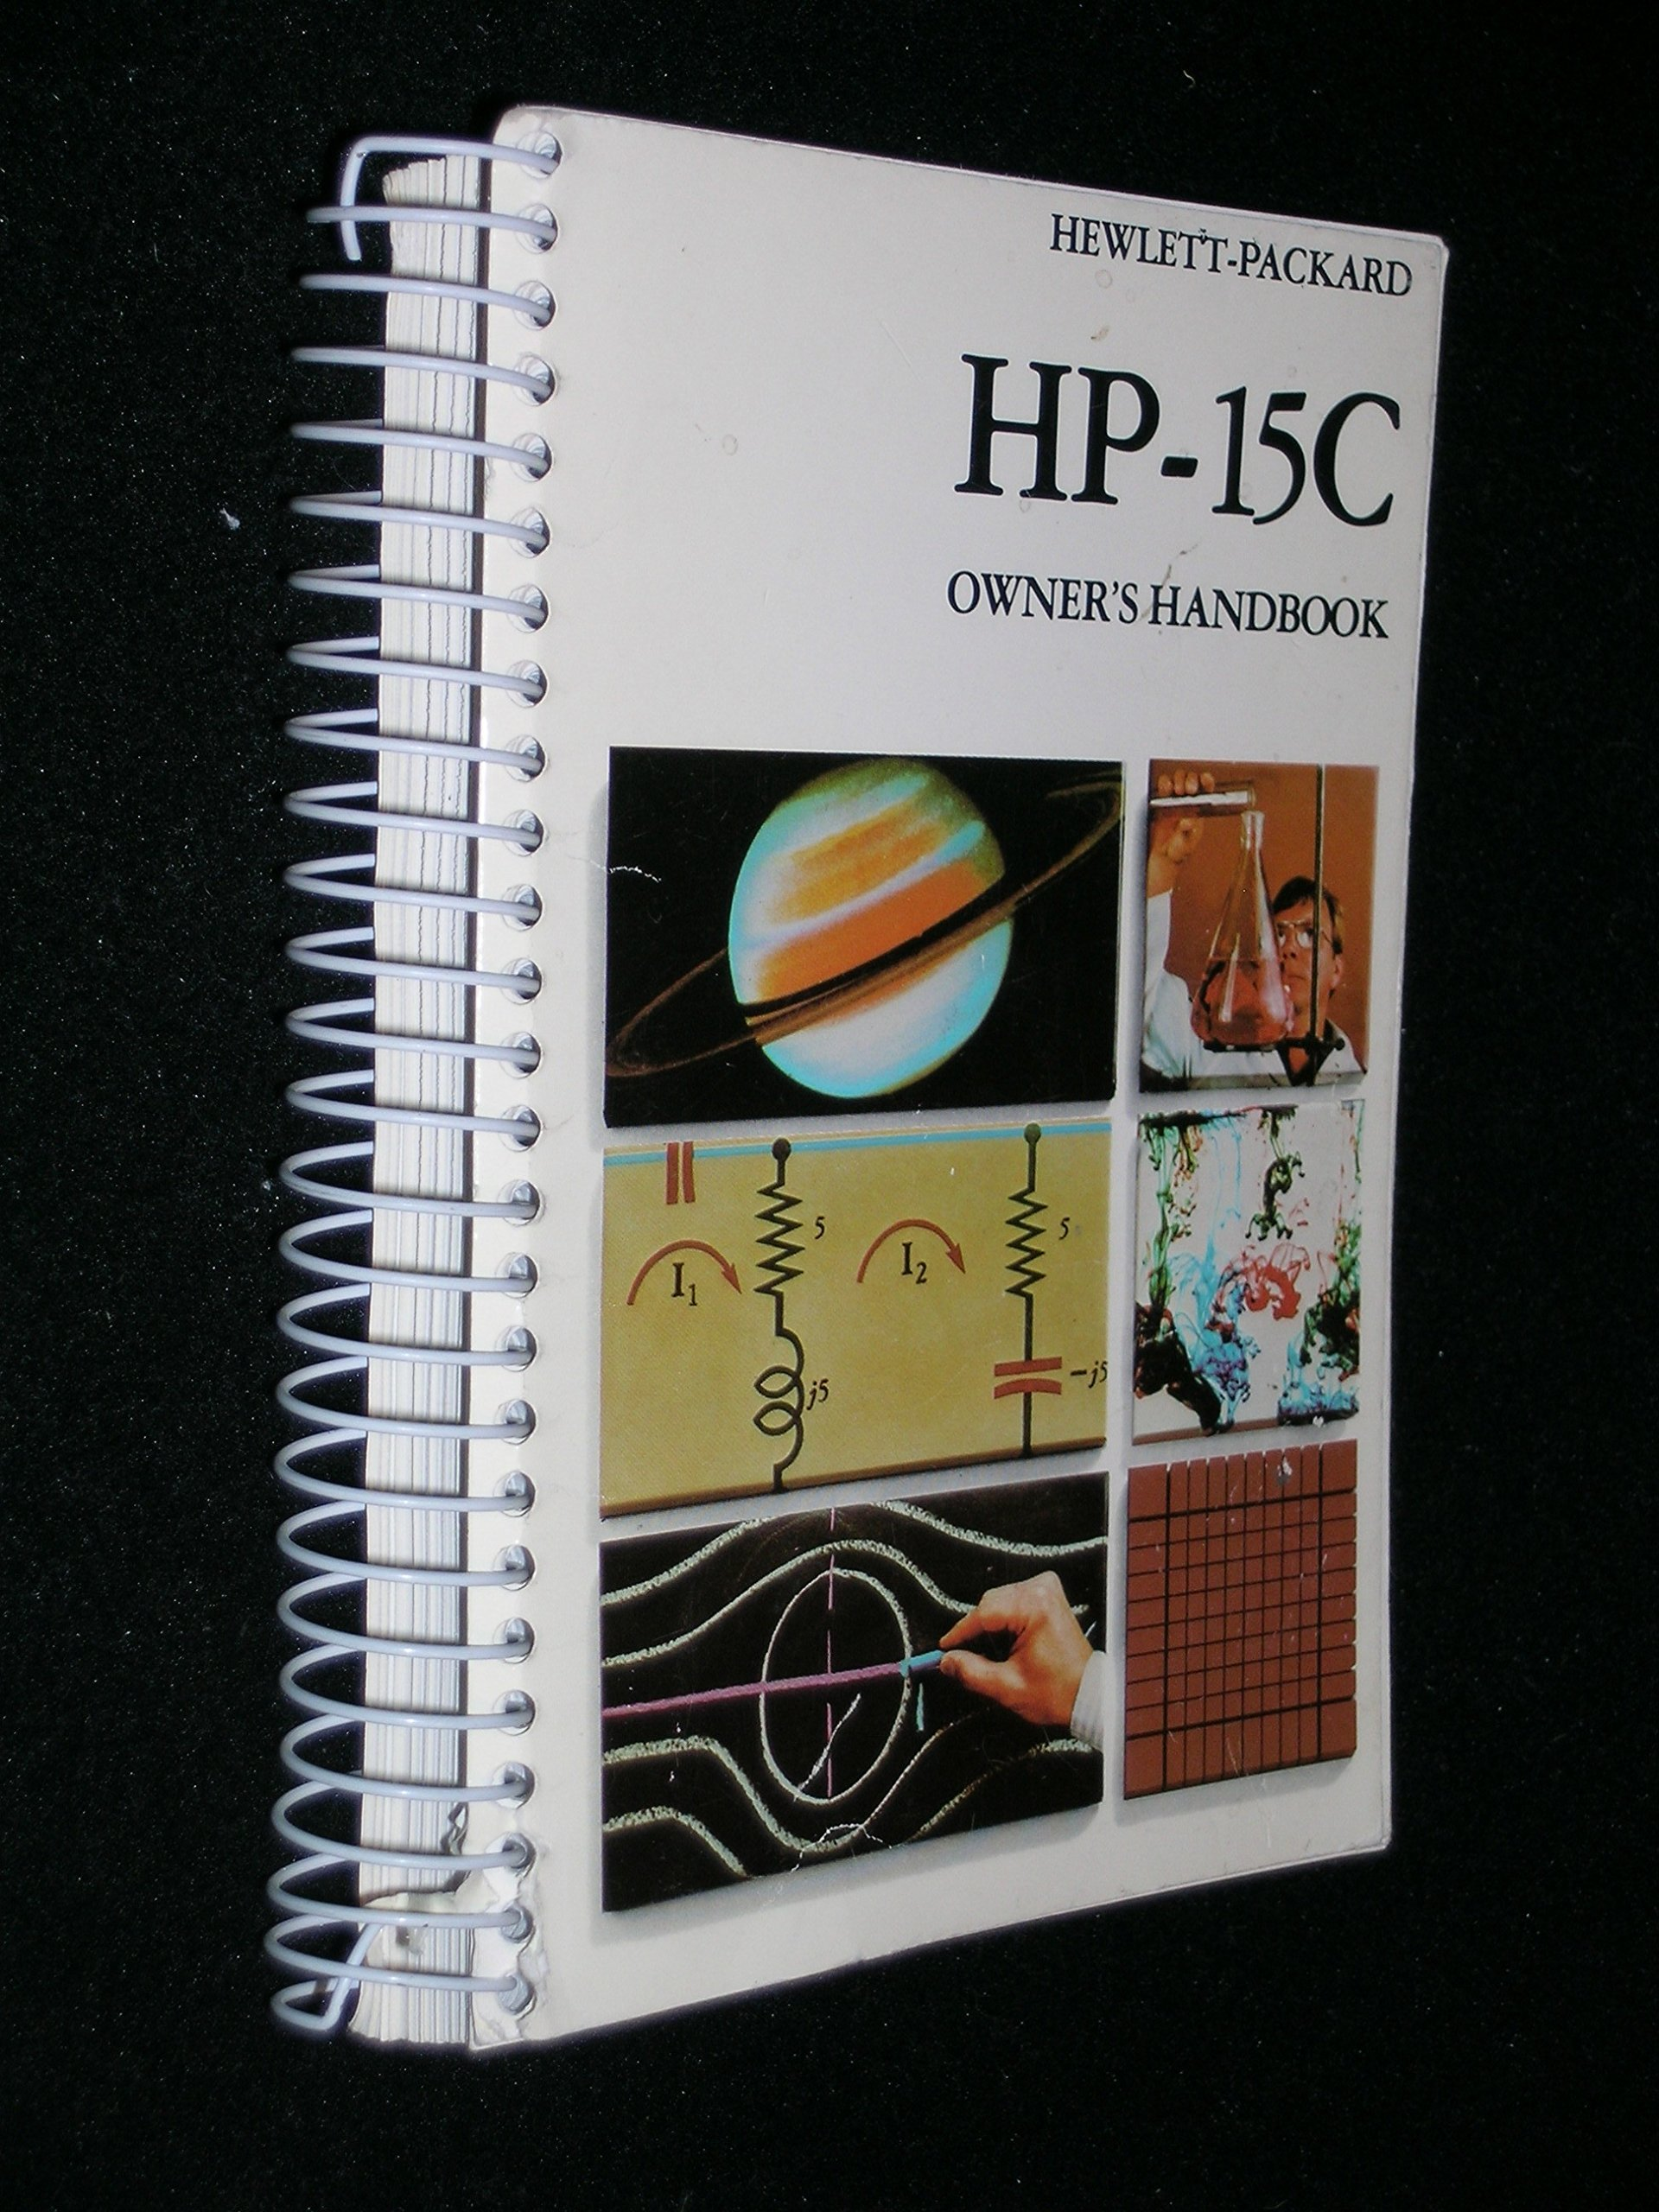 hp 15c owner s handbook august 1982 00015 90001 rev b hewlett rh amazon com HP-15C Android HP-15C Emulator